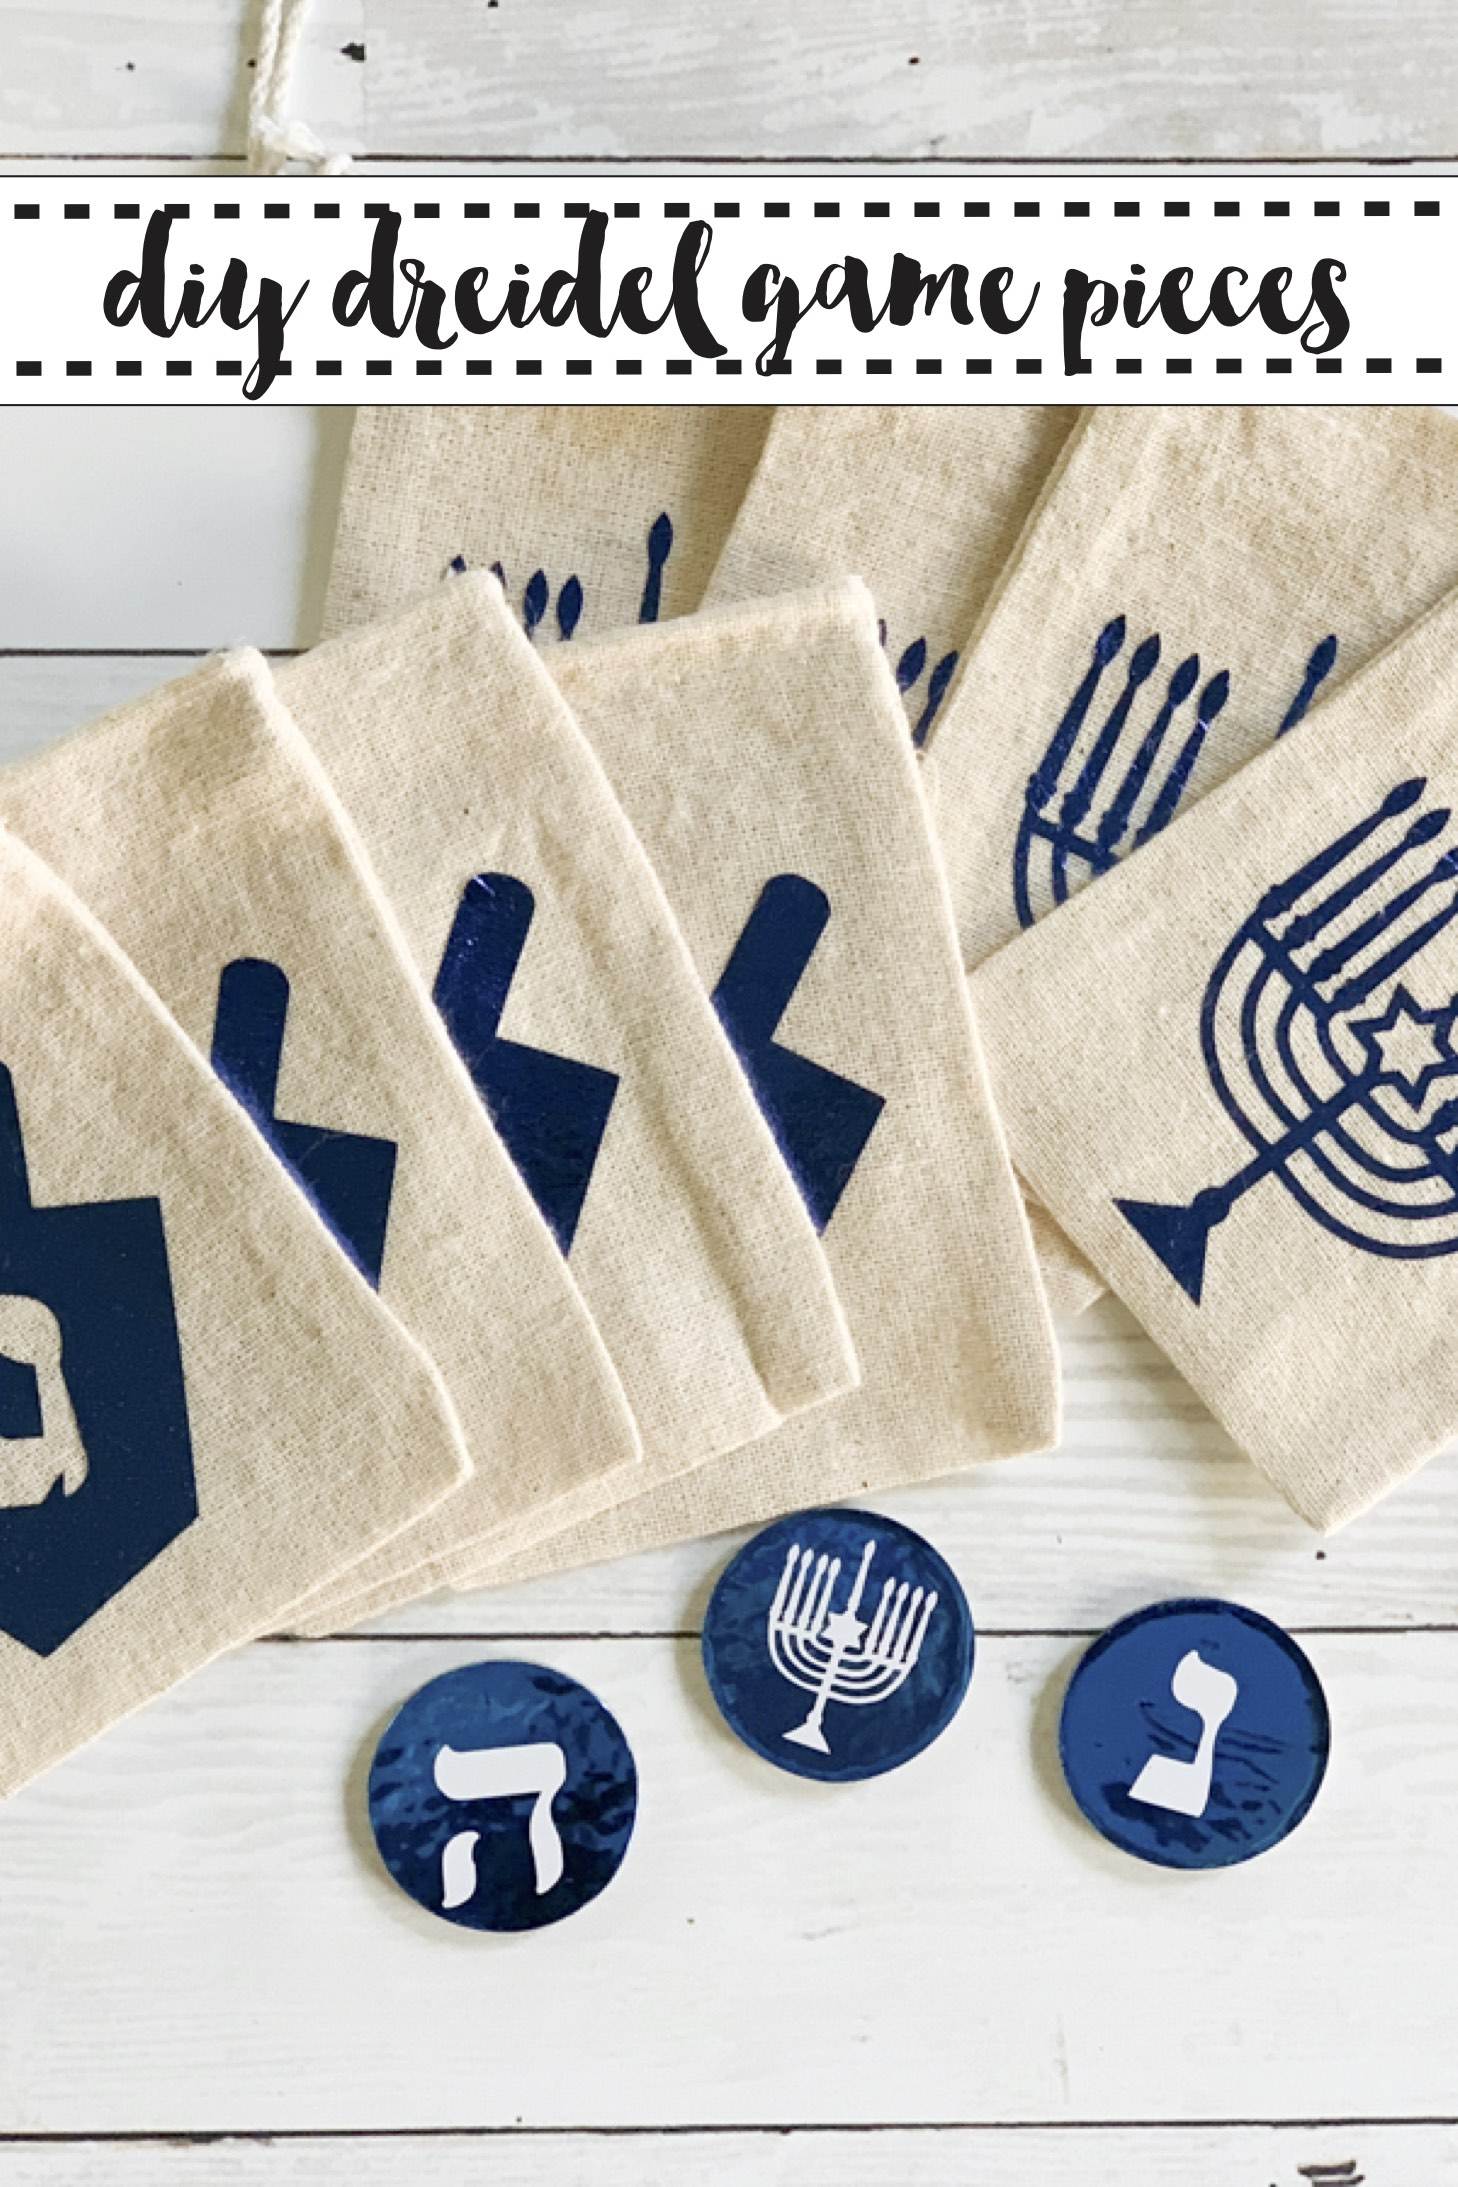 Hanukkah Dreidel Game Pieces